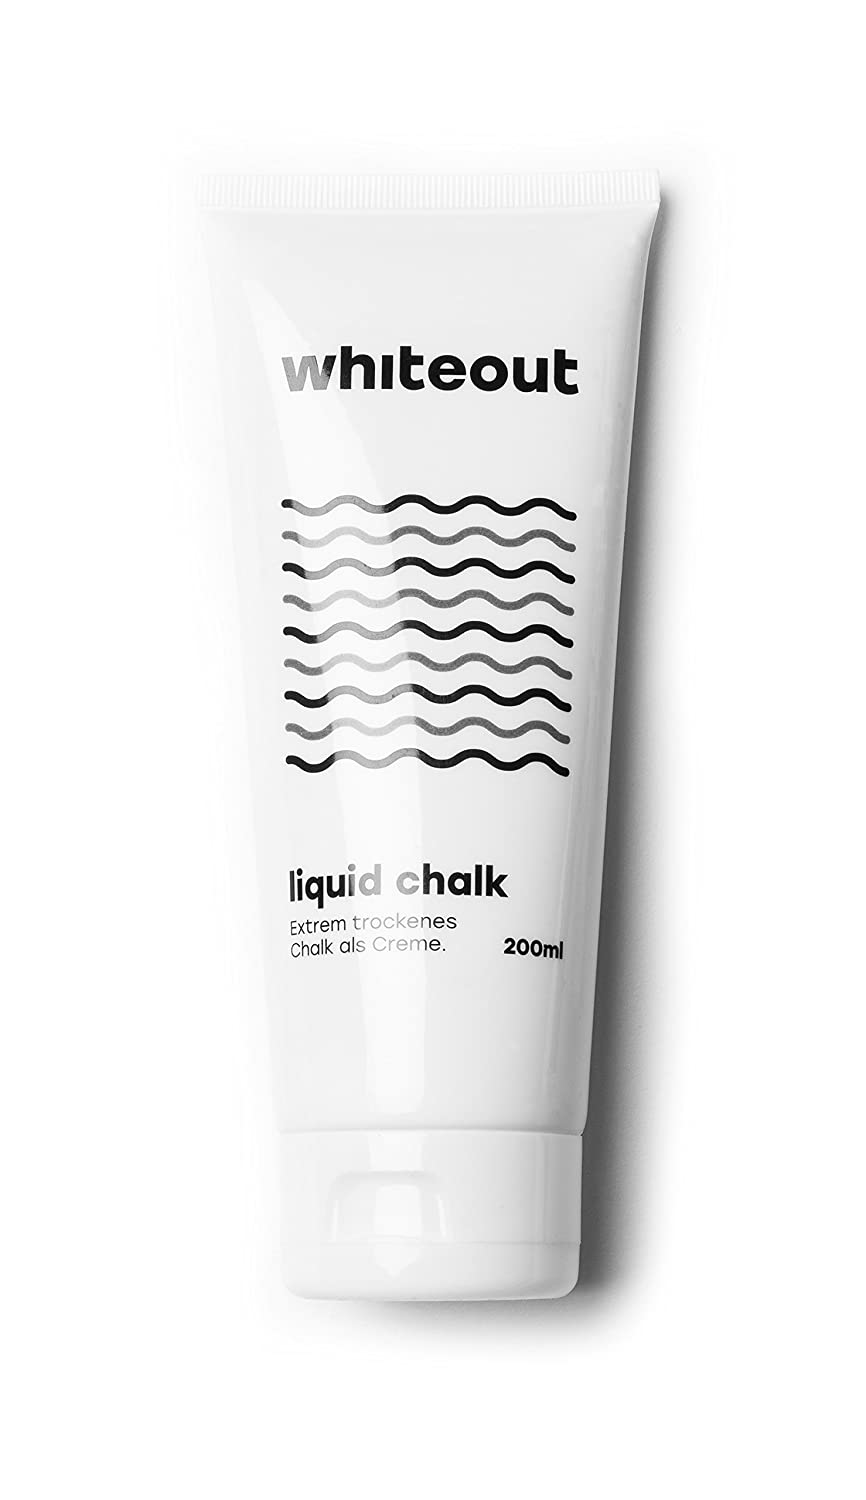 white chalk, liquid Whiteout